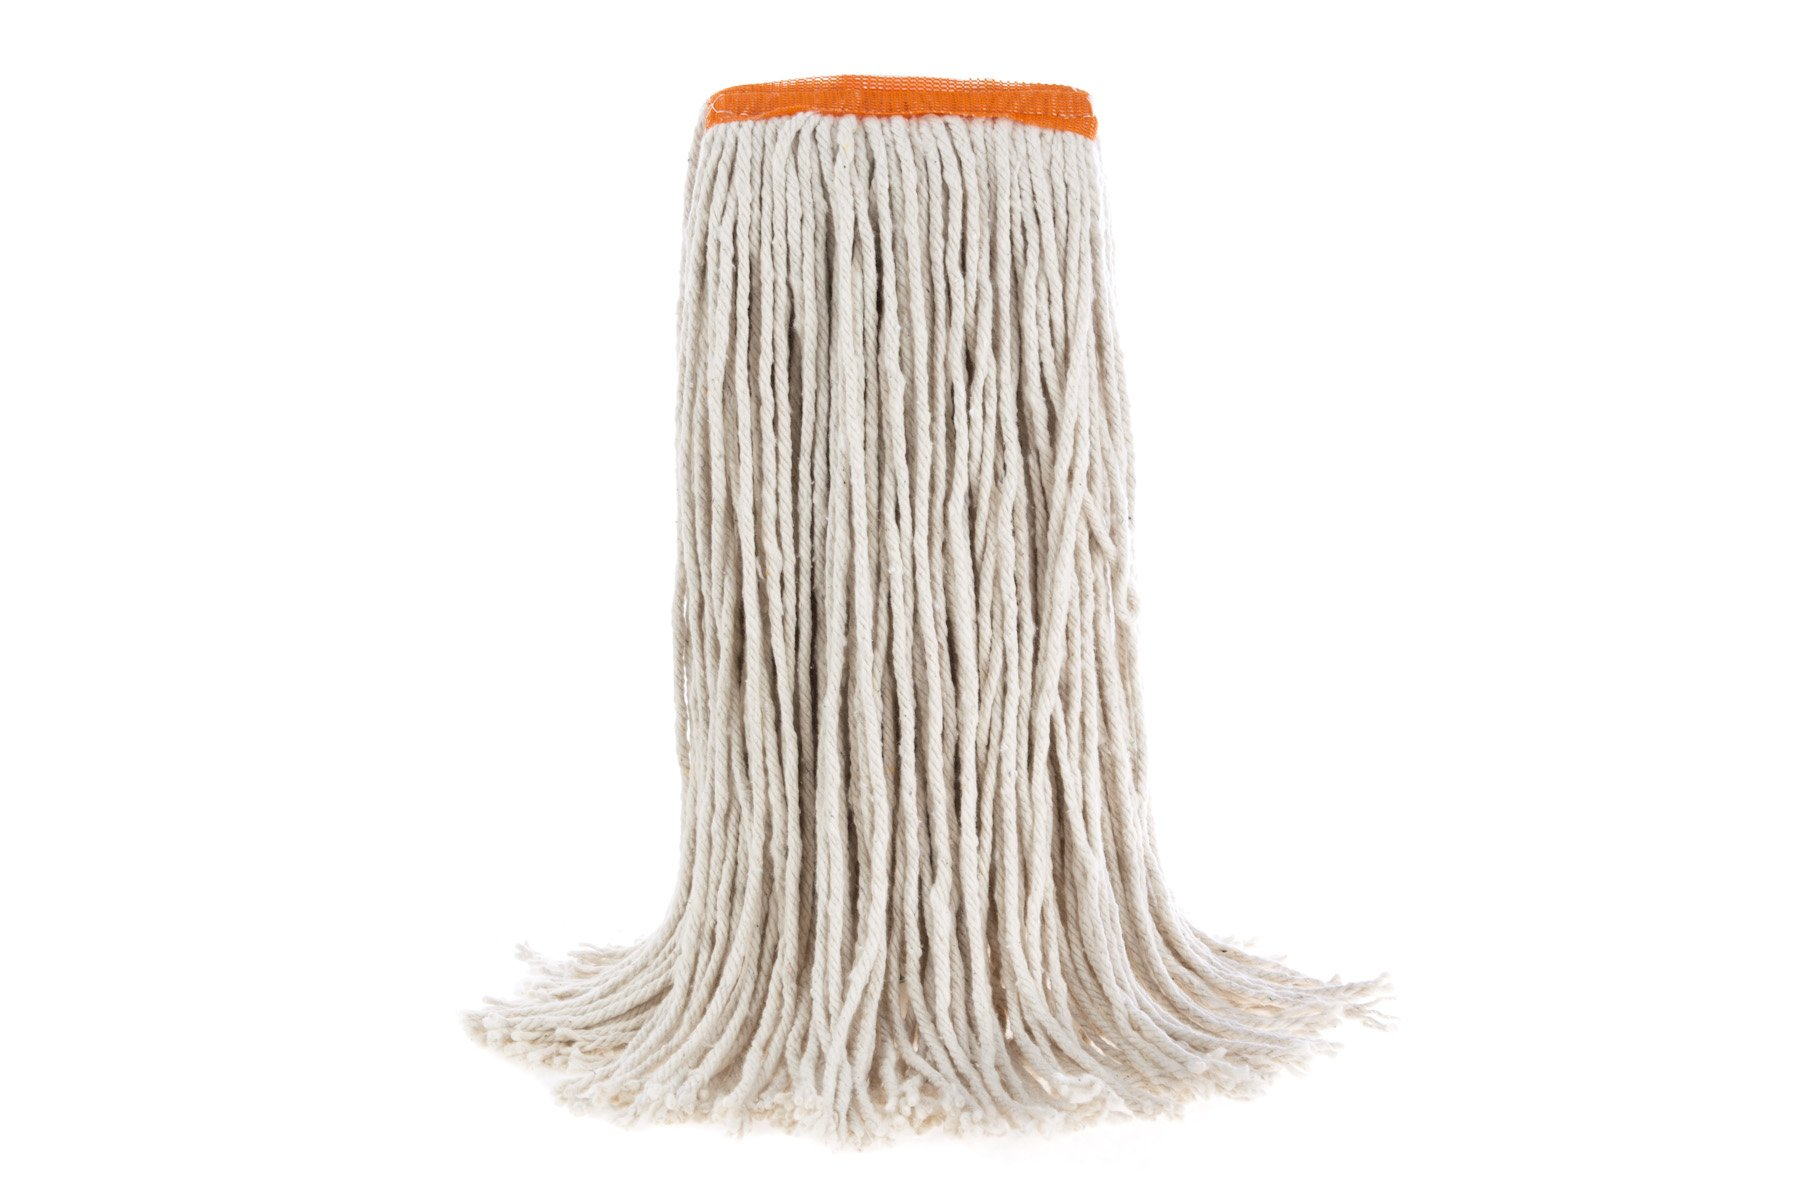 1624 650G COTTON NARROW BAND WET MOP